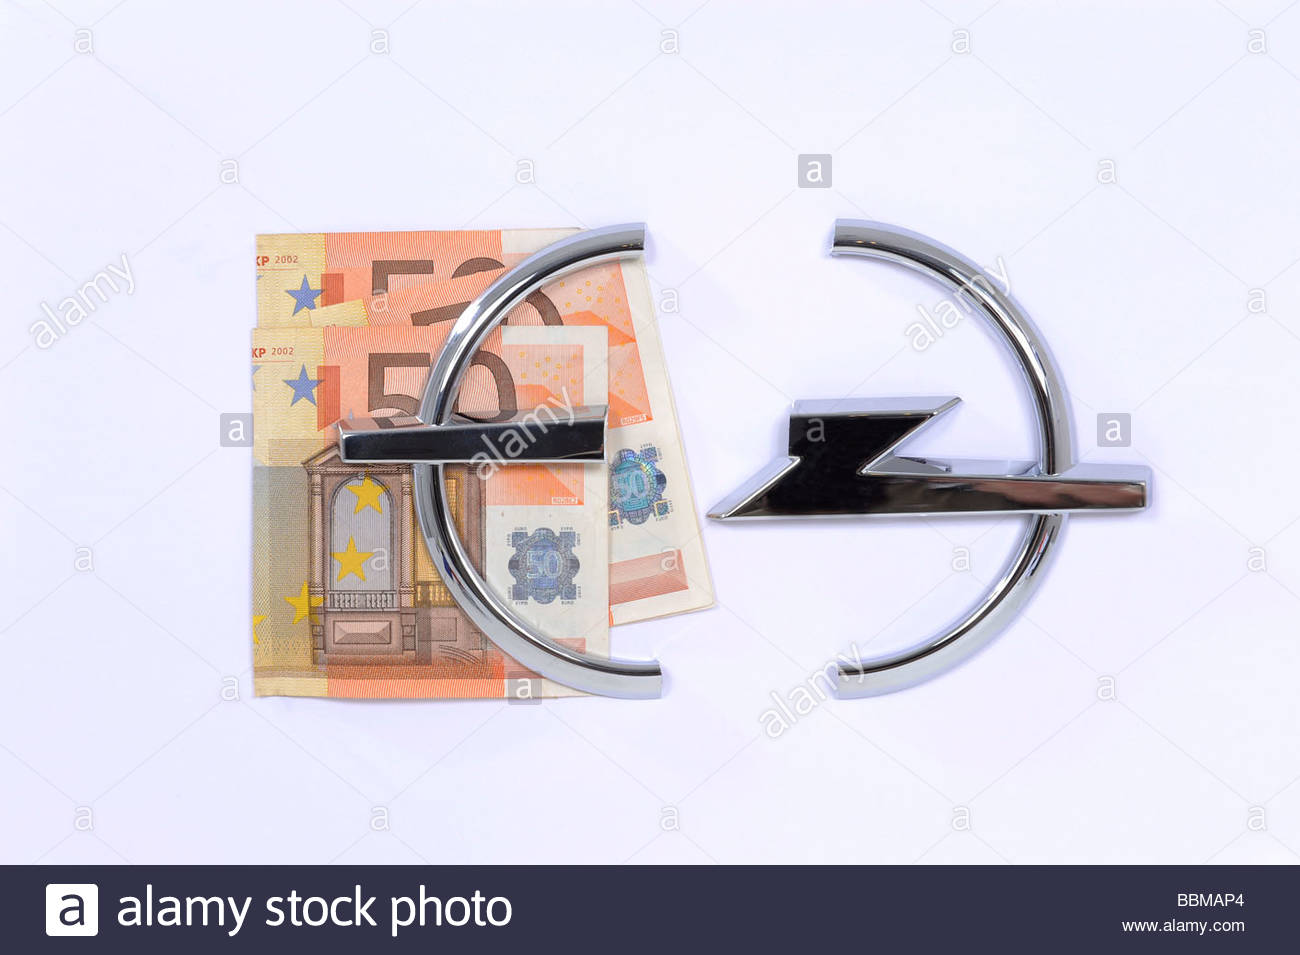 Cash Pool Homburg Opel Bad Stock Photos And Opel Bad Stock Images Alamy